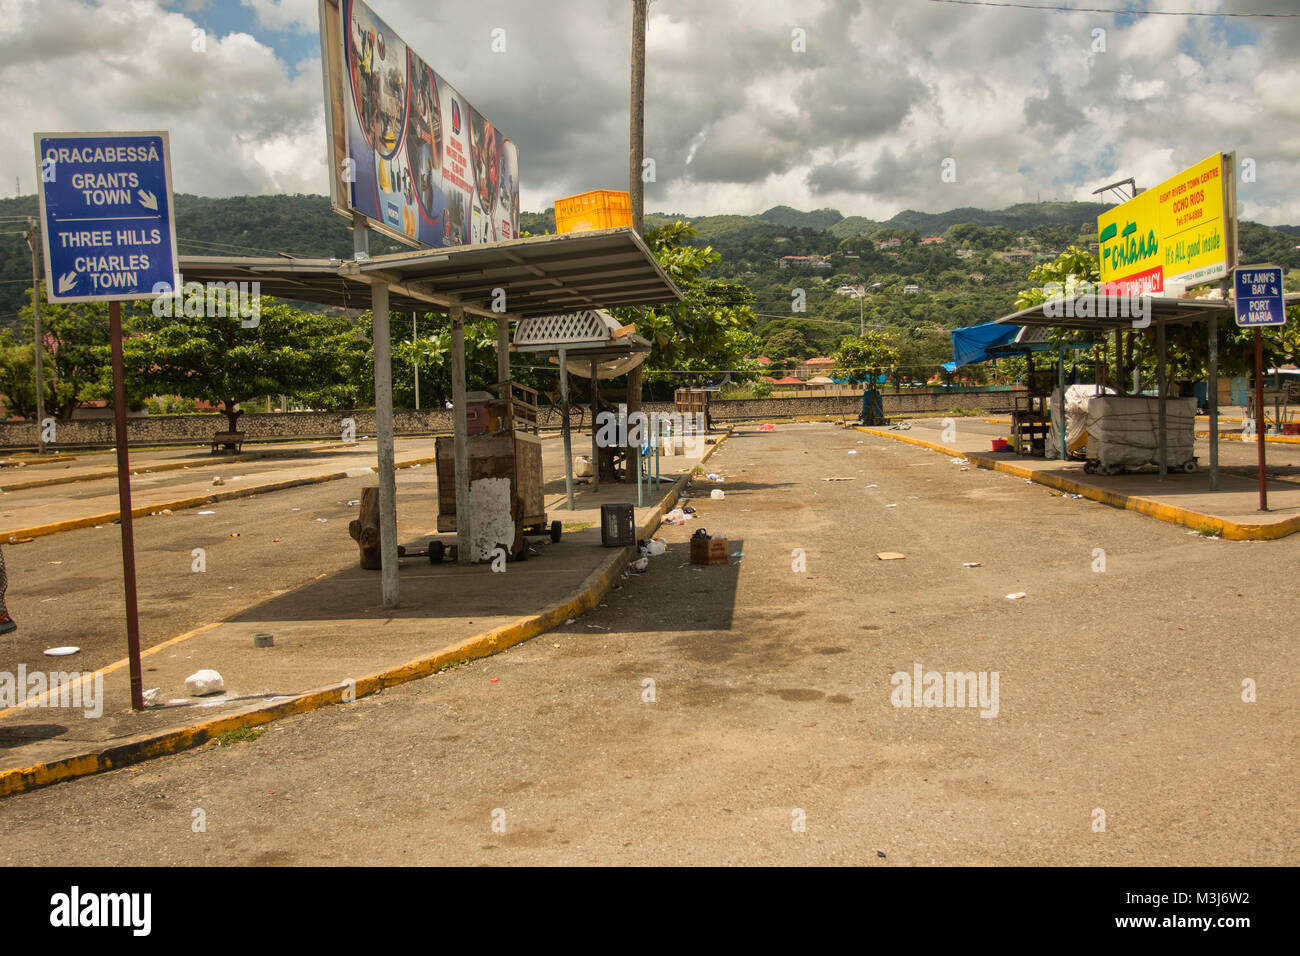 Ocho Rios bus station, Jamaica, West Indies, Caribbean - Stock Image